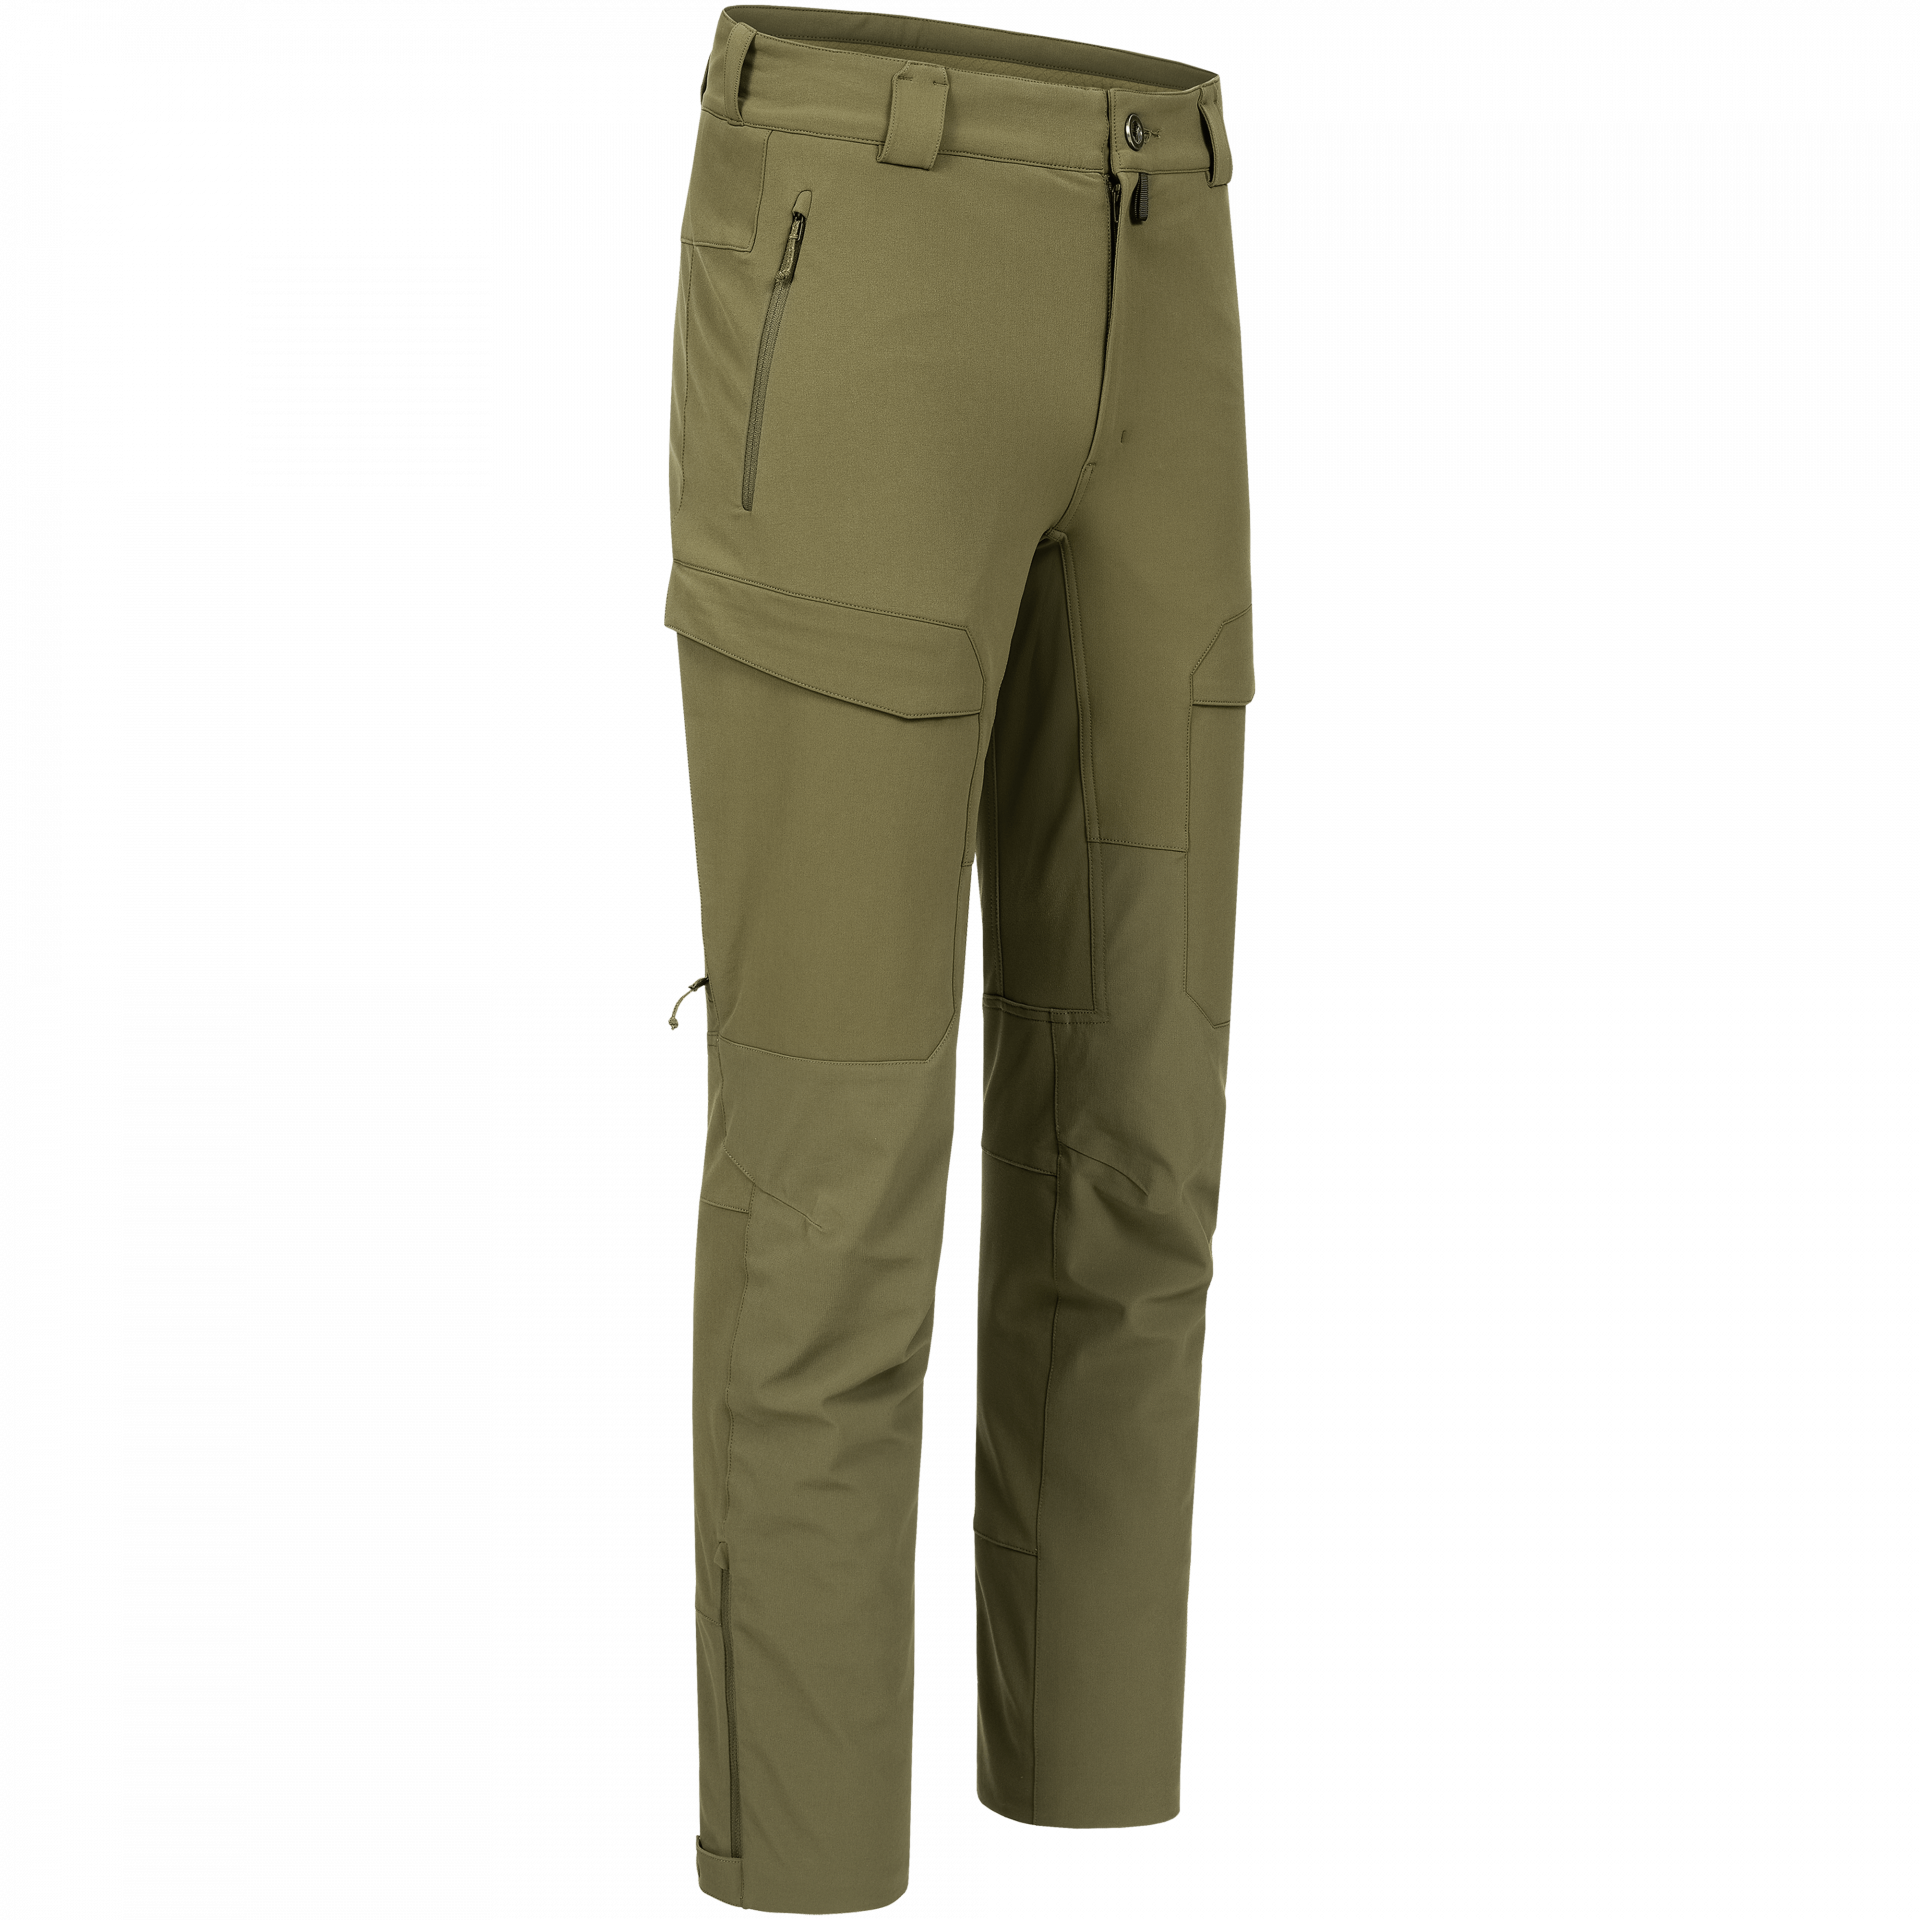 Charger Trousers